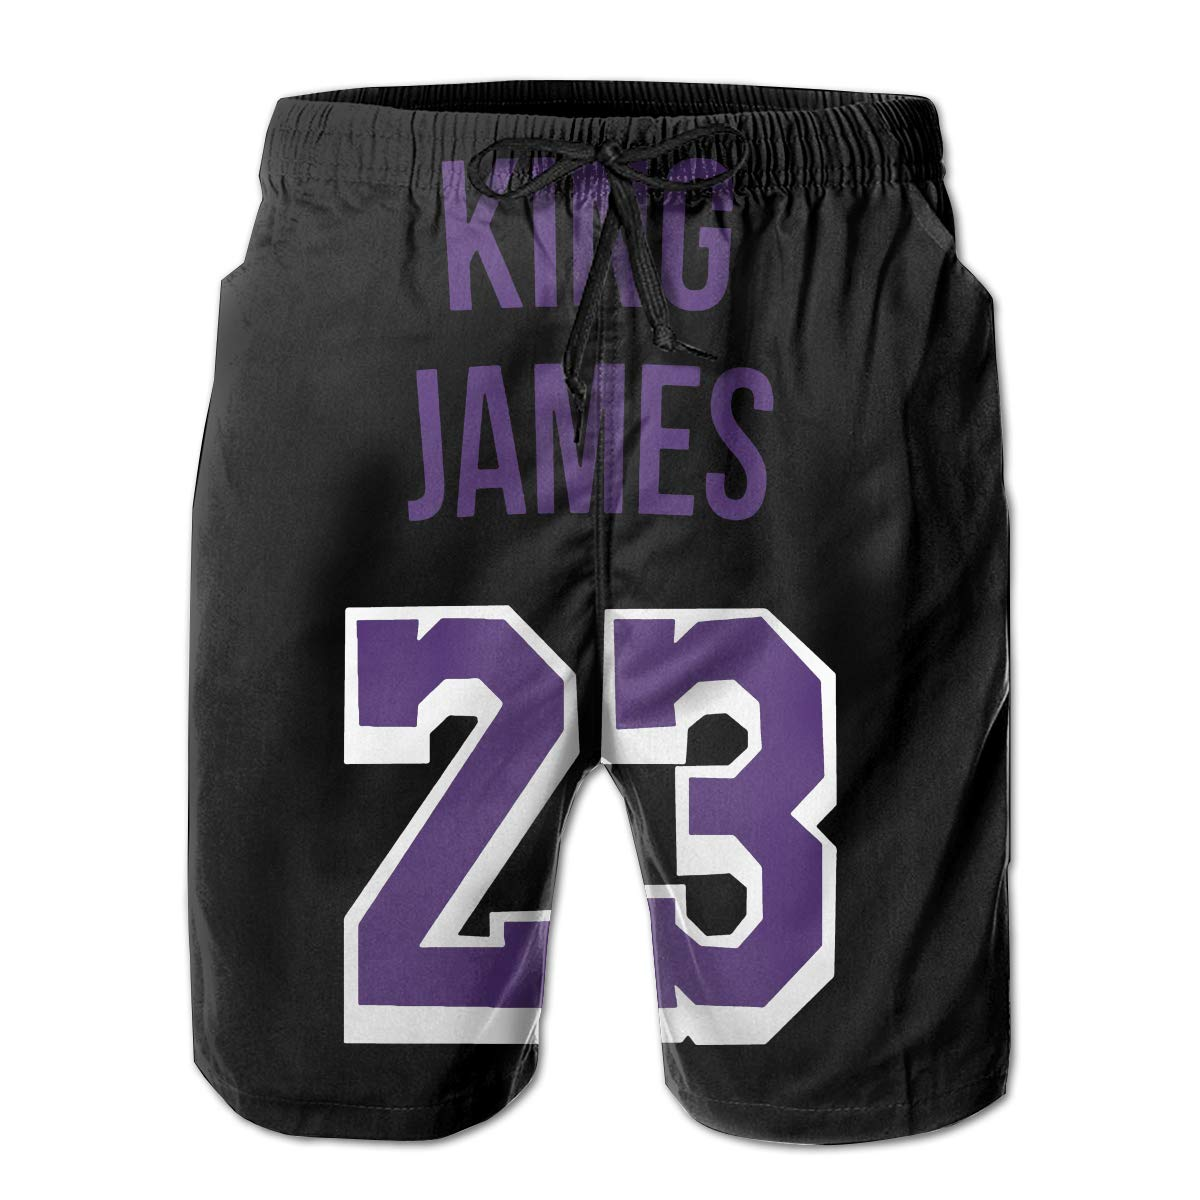 James King James Nickname Mens Quick Dry Swim Trunks Beach Shorts Board Shorts